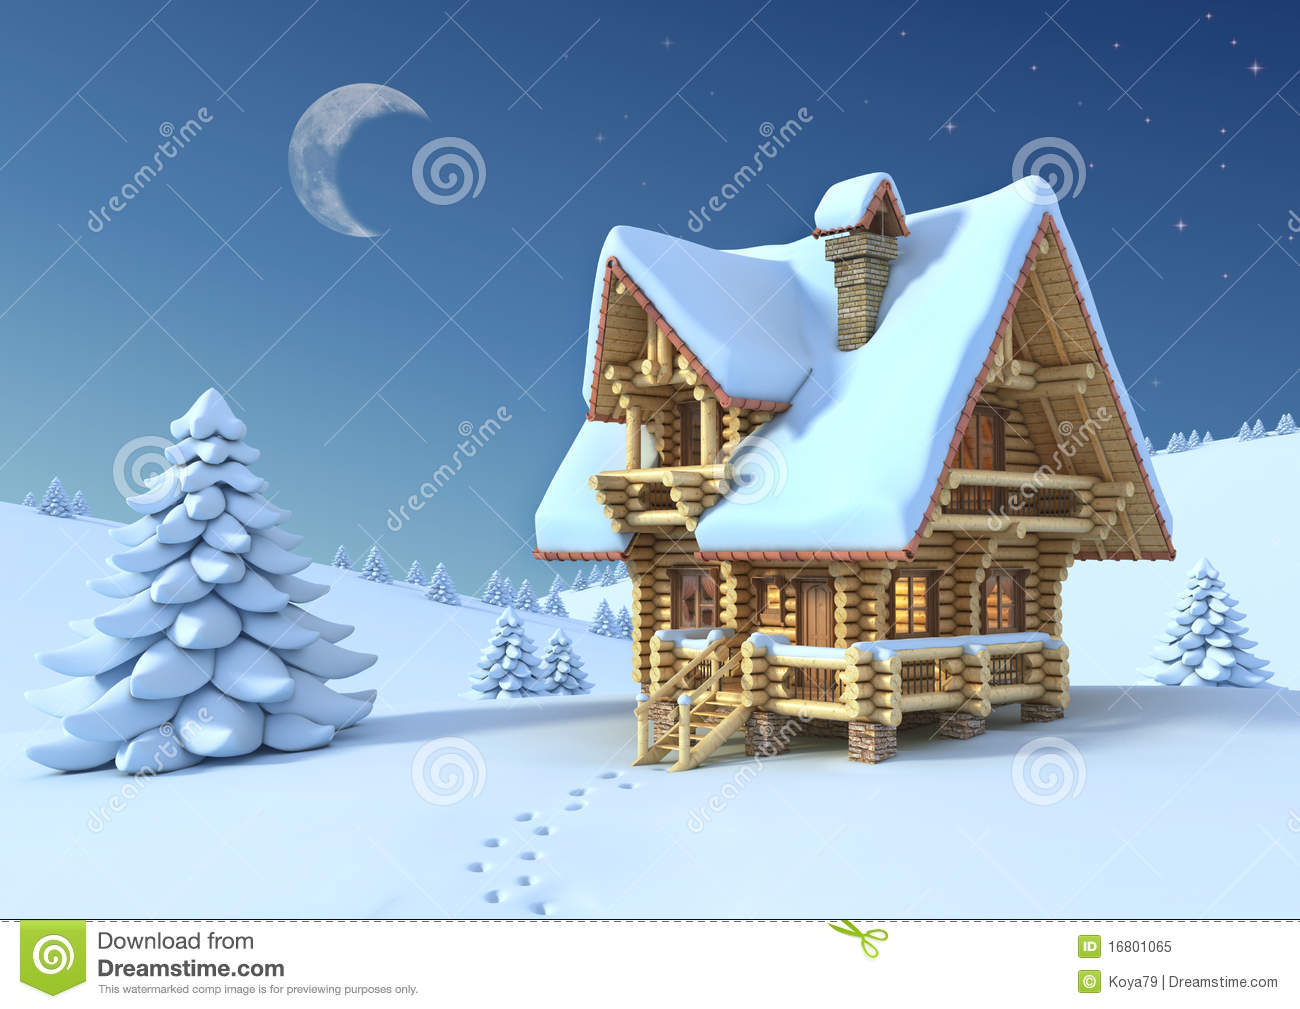 The mountain in winter temple clipart #4